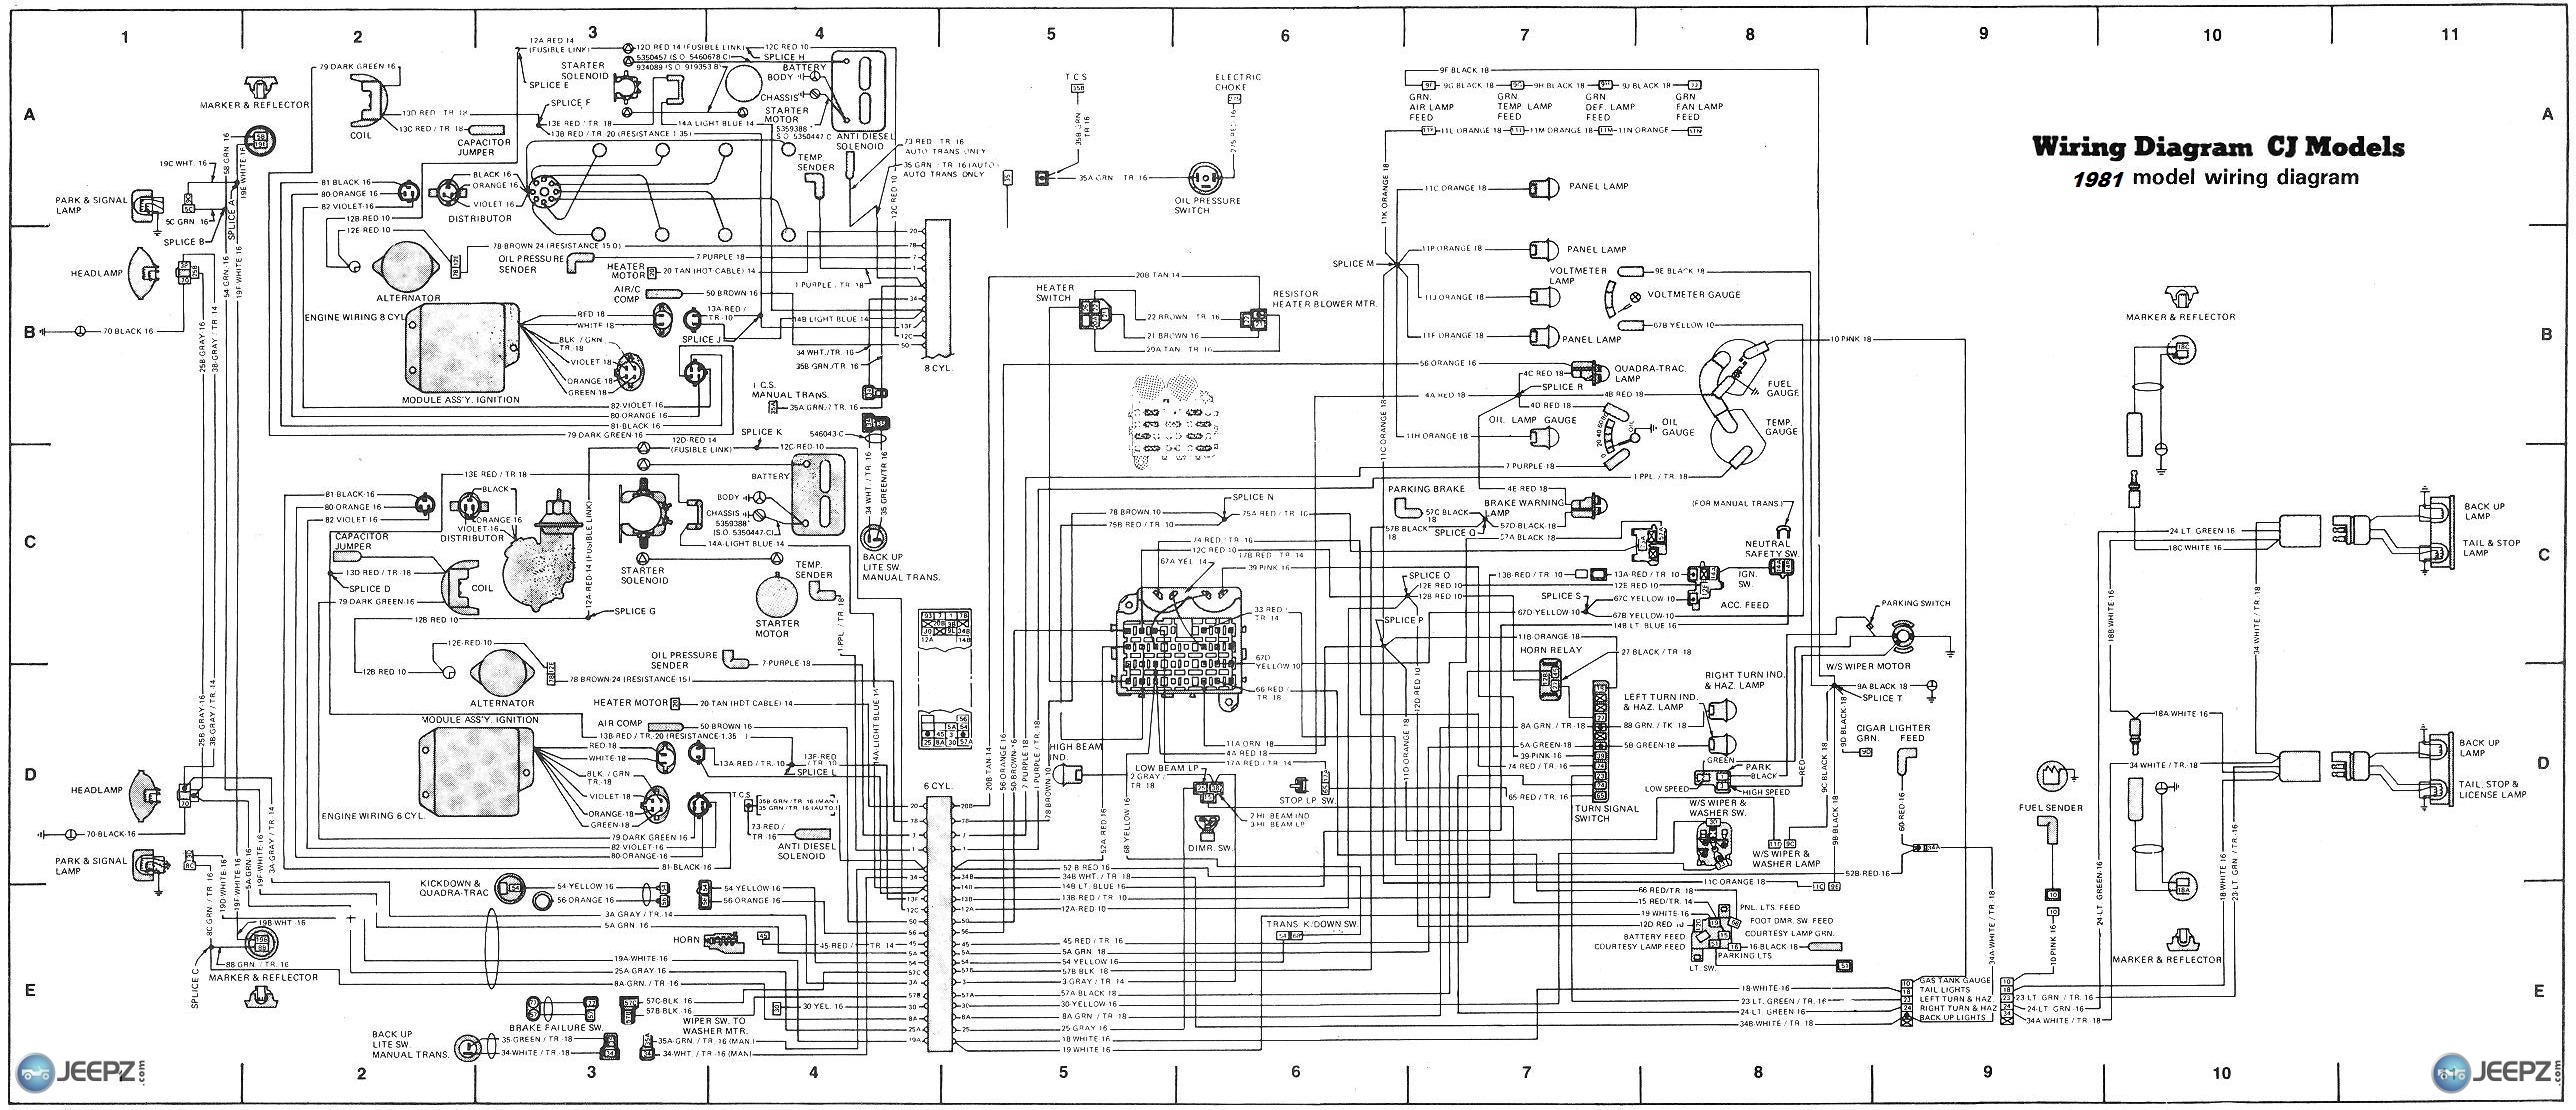 jeep wiring 101 wiring diagram centre basic electrical wiring 101 jeepcj forums [ 2576 x 1110 Pixel ]